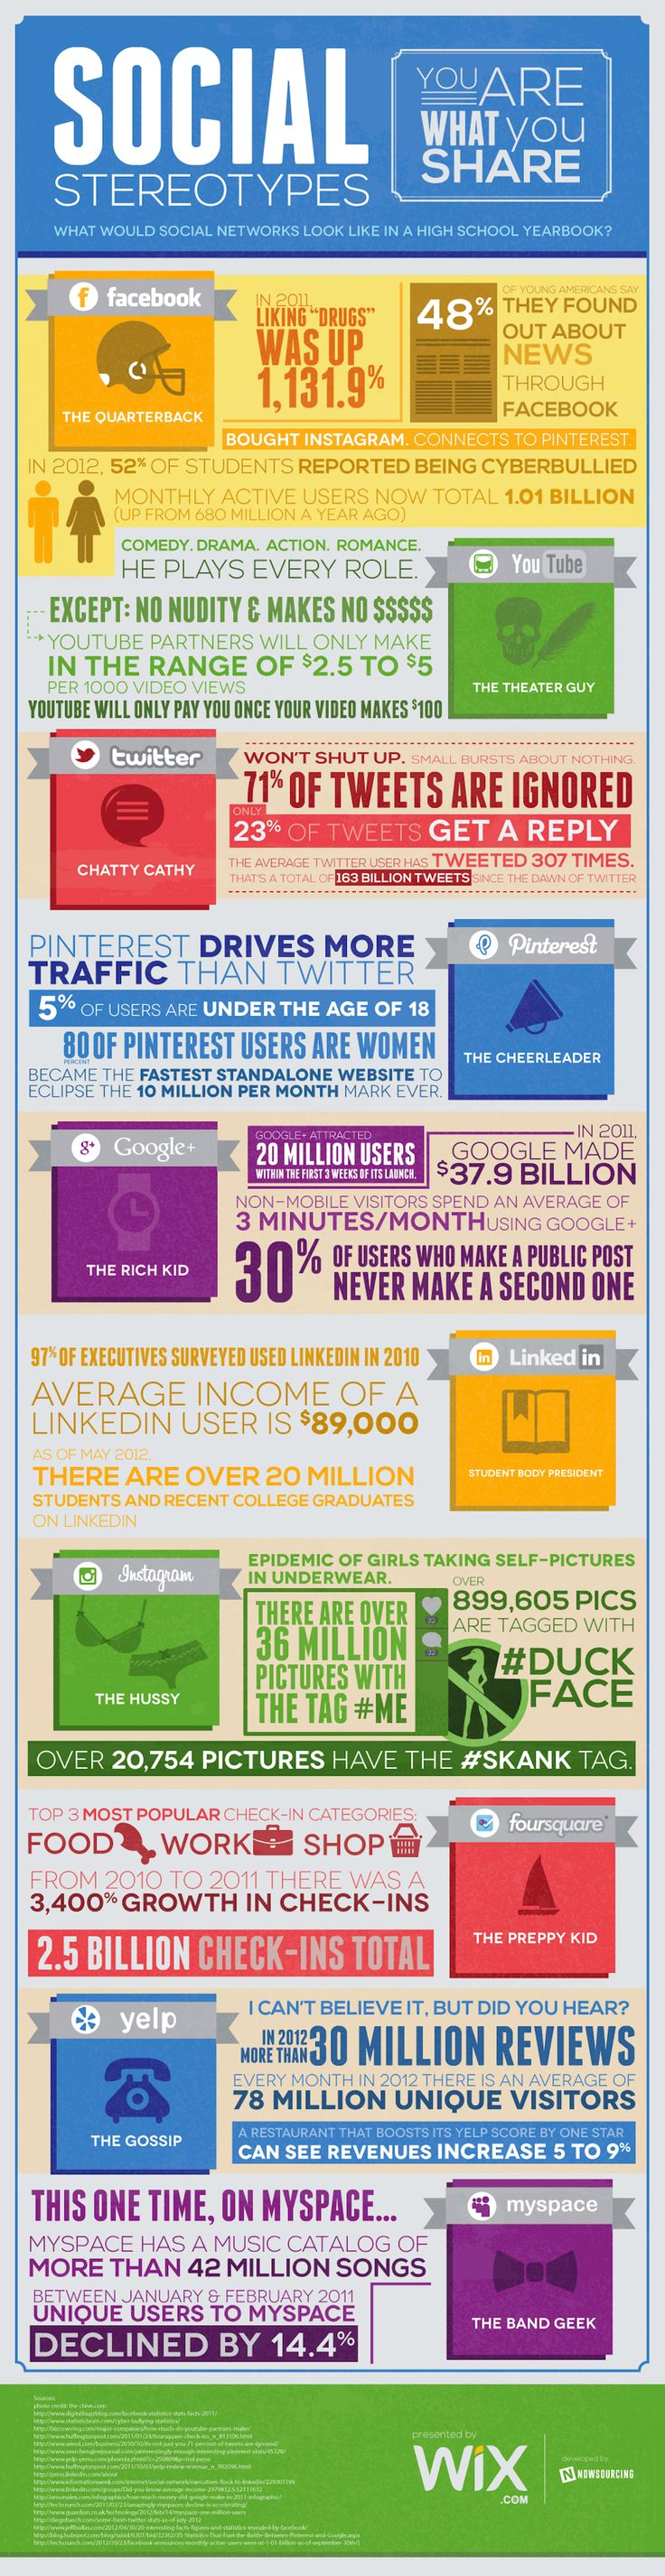 Social Media Stereotypes: You Are What You Share #Infographic